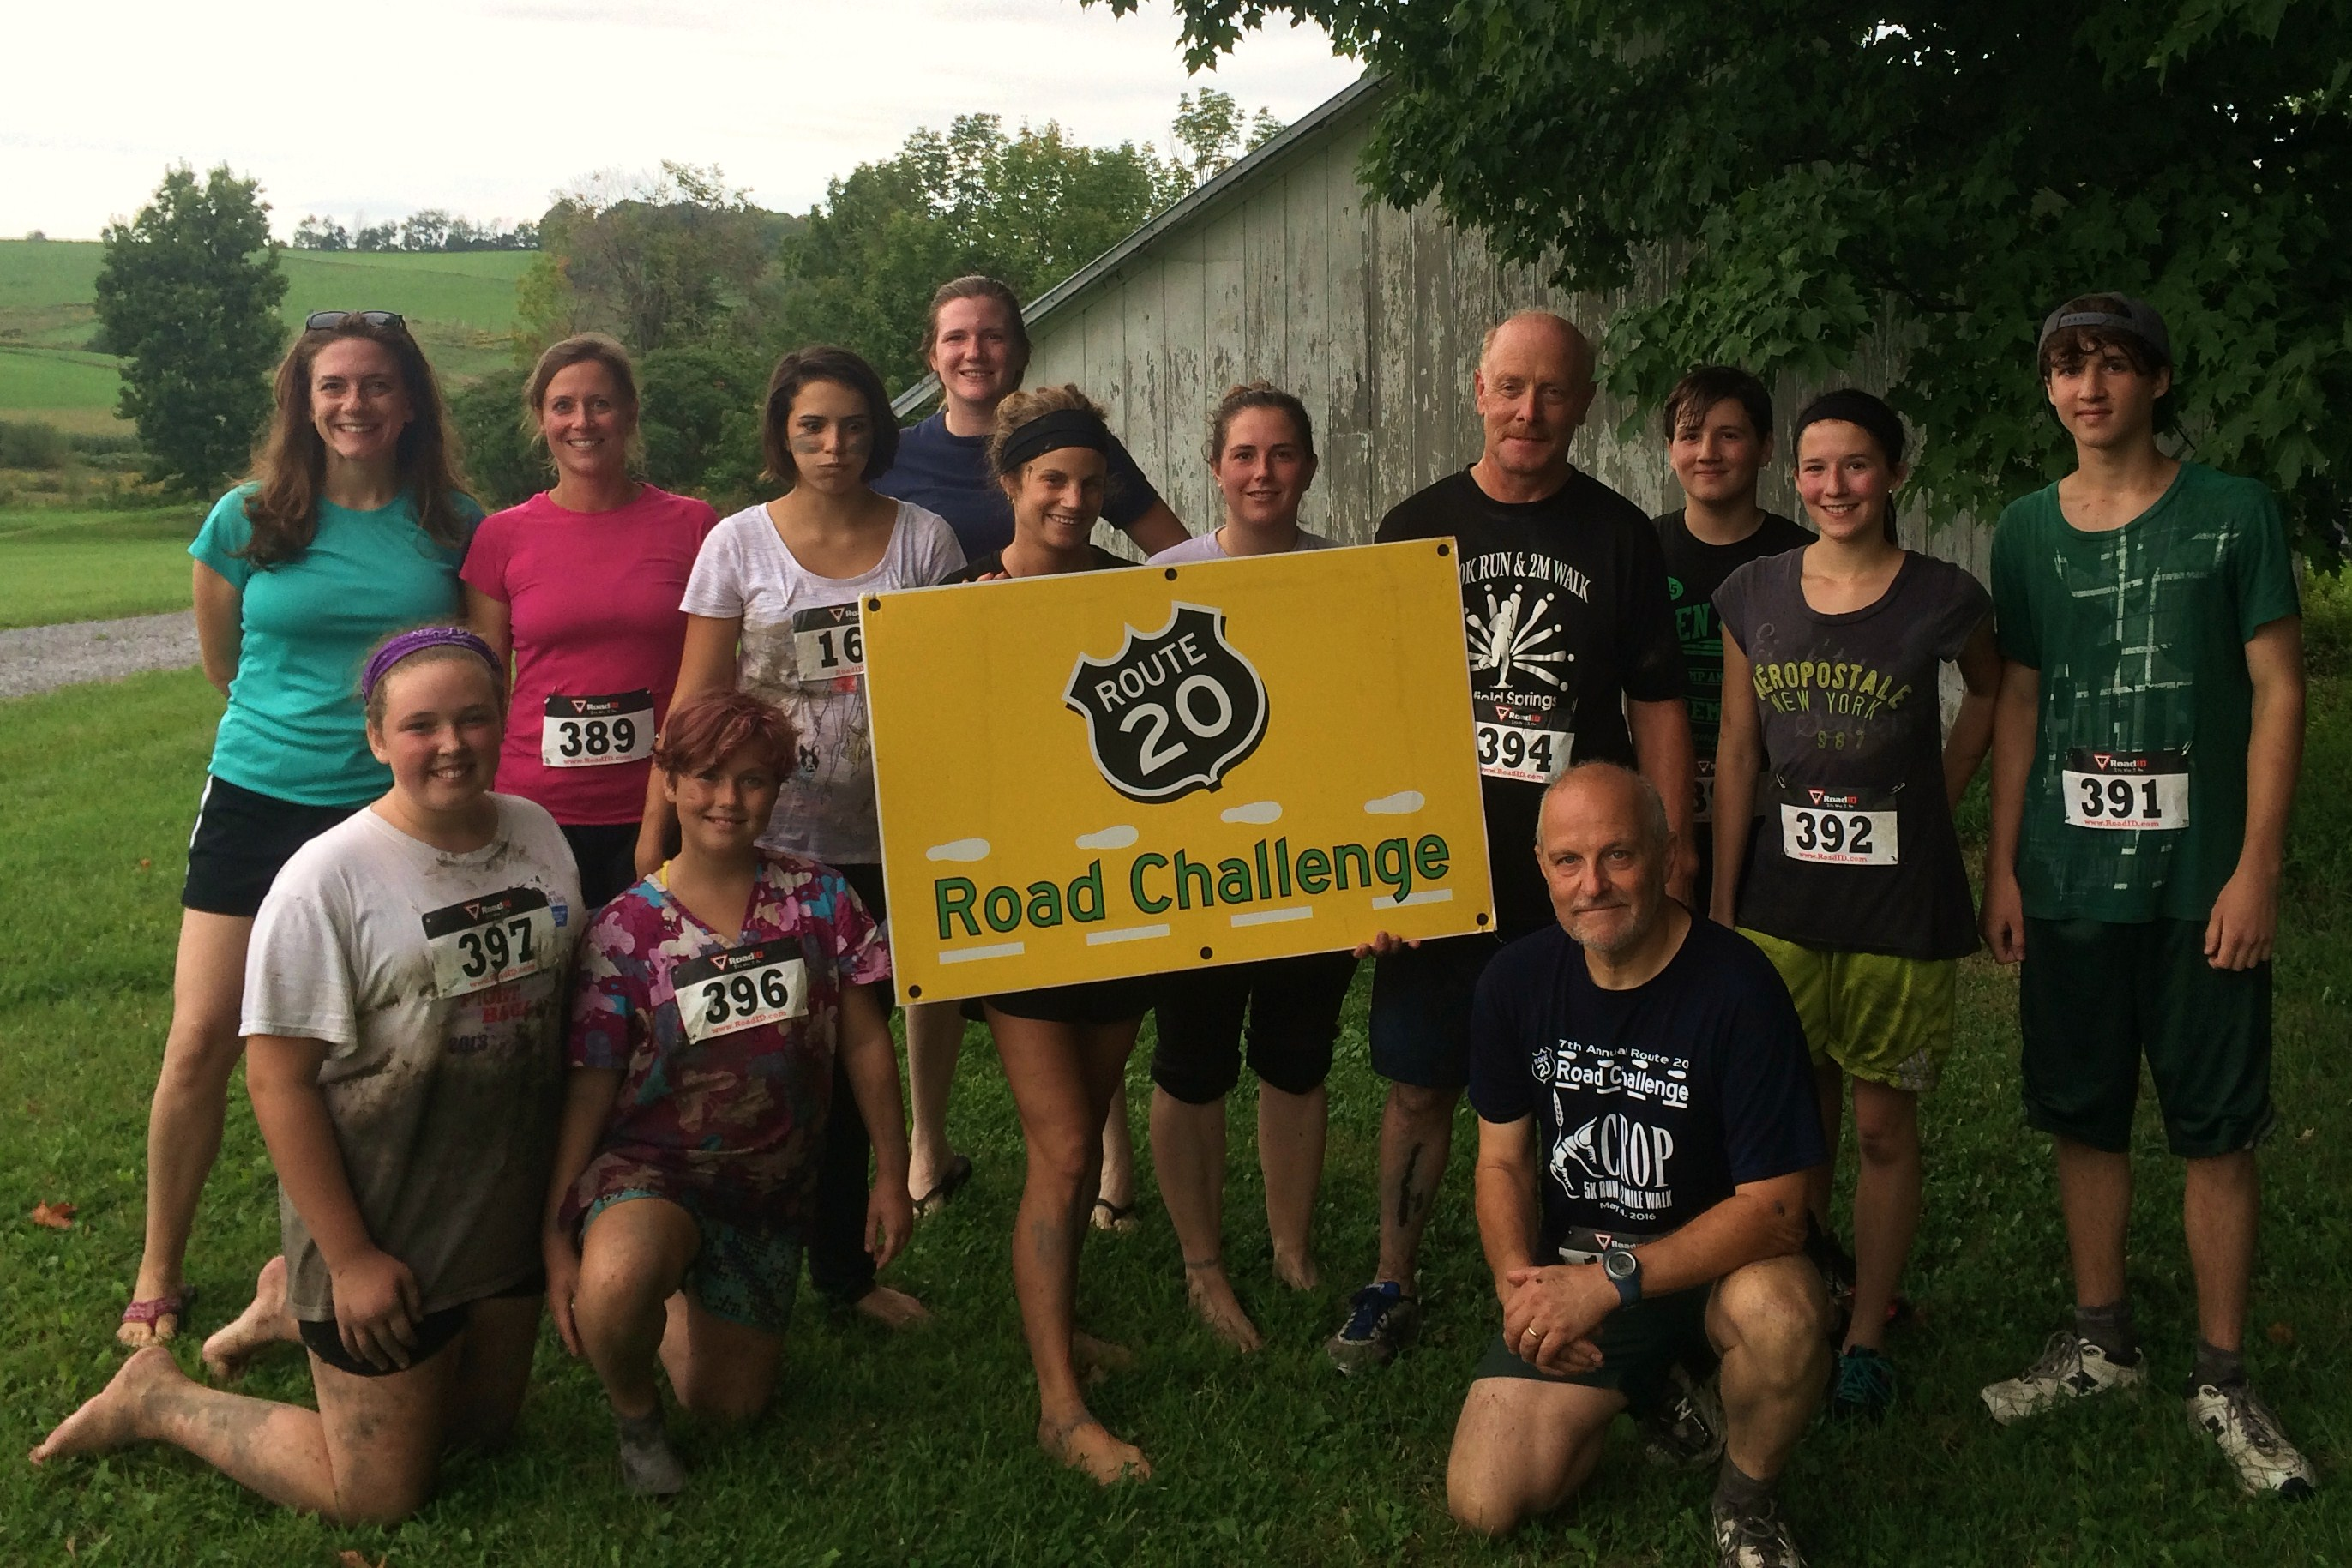 Race Results for the FALLING FOOTSTEPS CROSS COUNTRY (MINI-MUDDER) 5K RUN, 1 MILE WALK